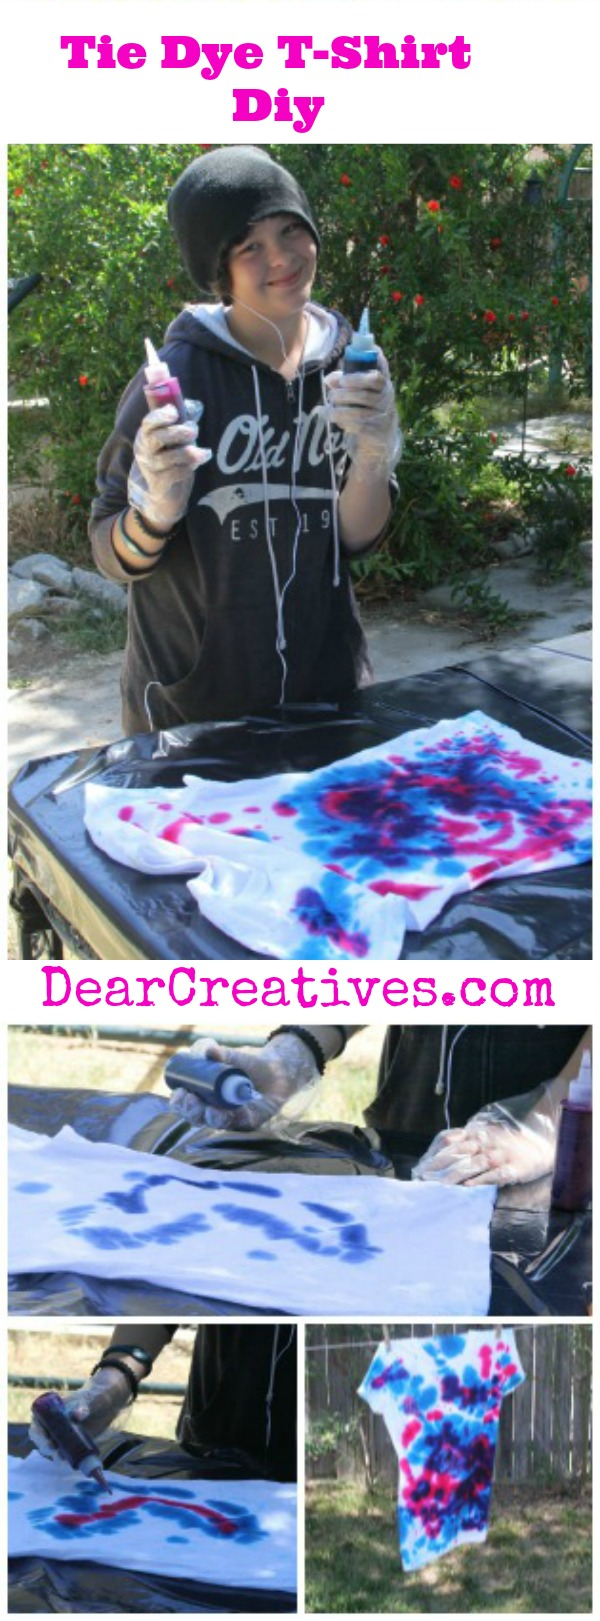 Diy, Sammie (Girl Tie Dying) Tie-Dye T-Shirt Project - Fun summer crafts to do with your older kids, tweens, and teens. Teen summer crafts. See how to tie-dye at DearCreatives.com